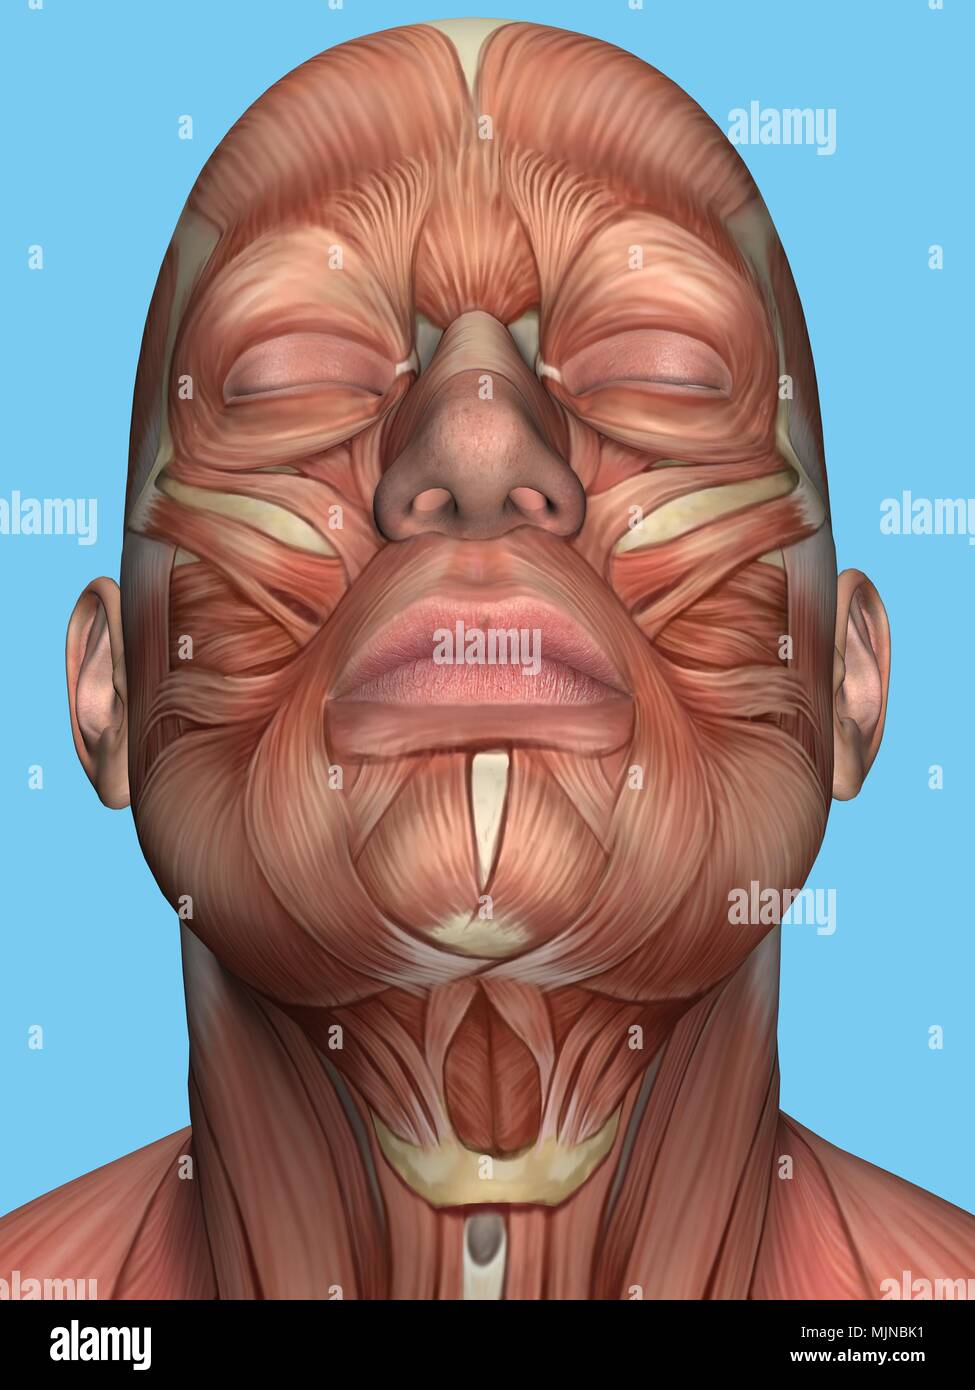 Muscles Of The Face And Neck Imágenes De Stock & Muscles Of The Face ...